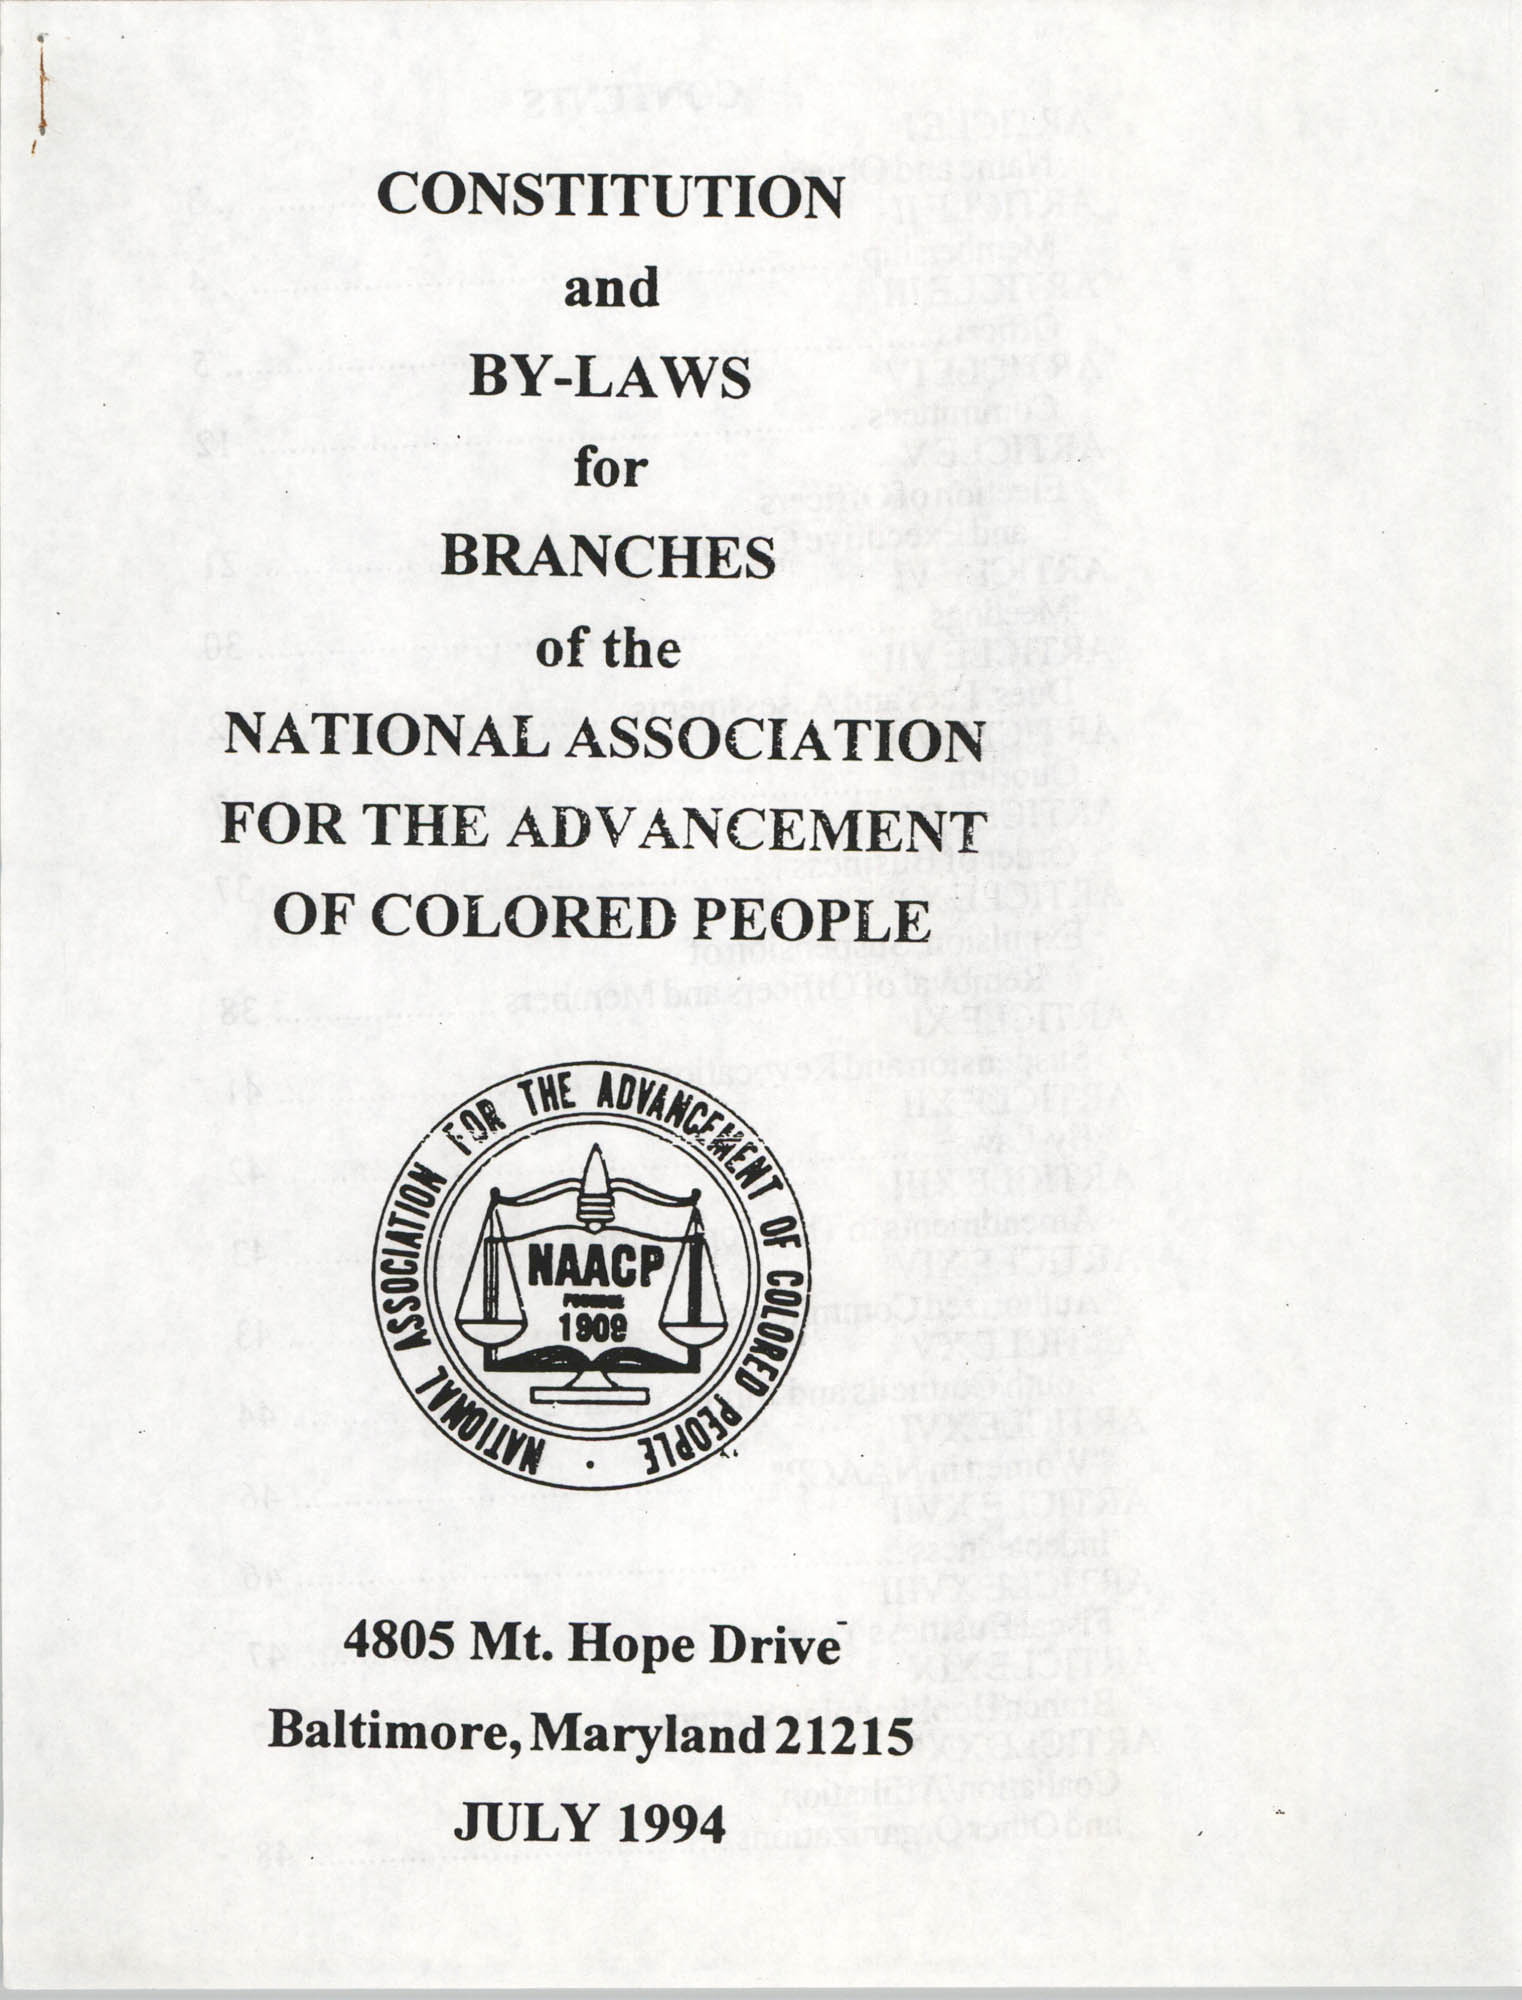 Constitution and By-Laws for Branches of the NAACP, July 1994, Cover